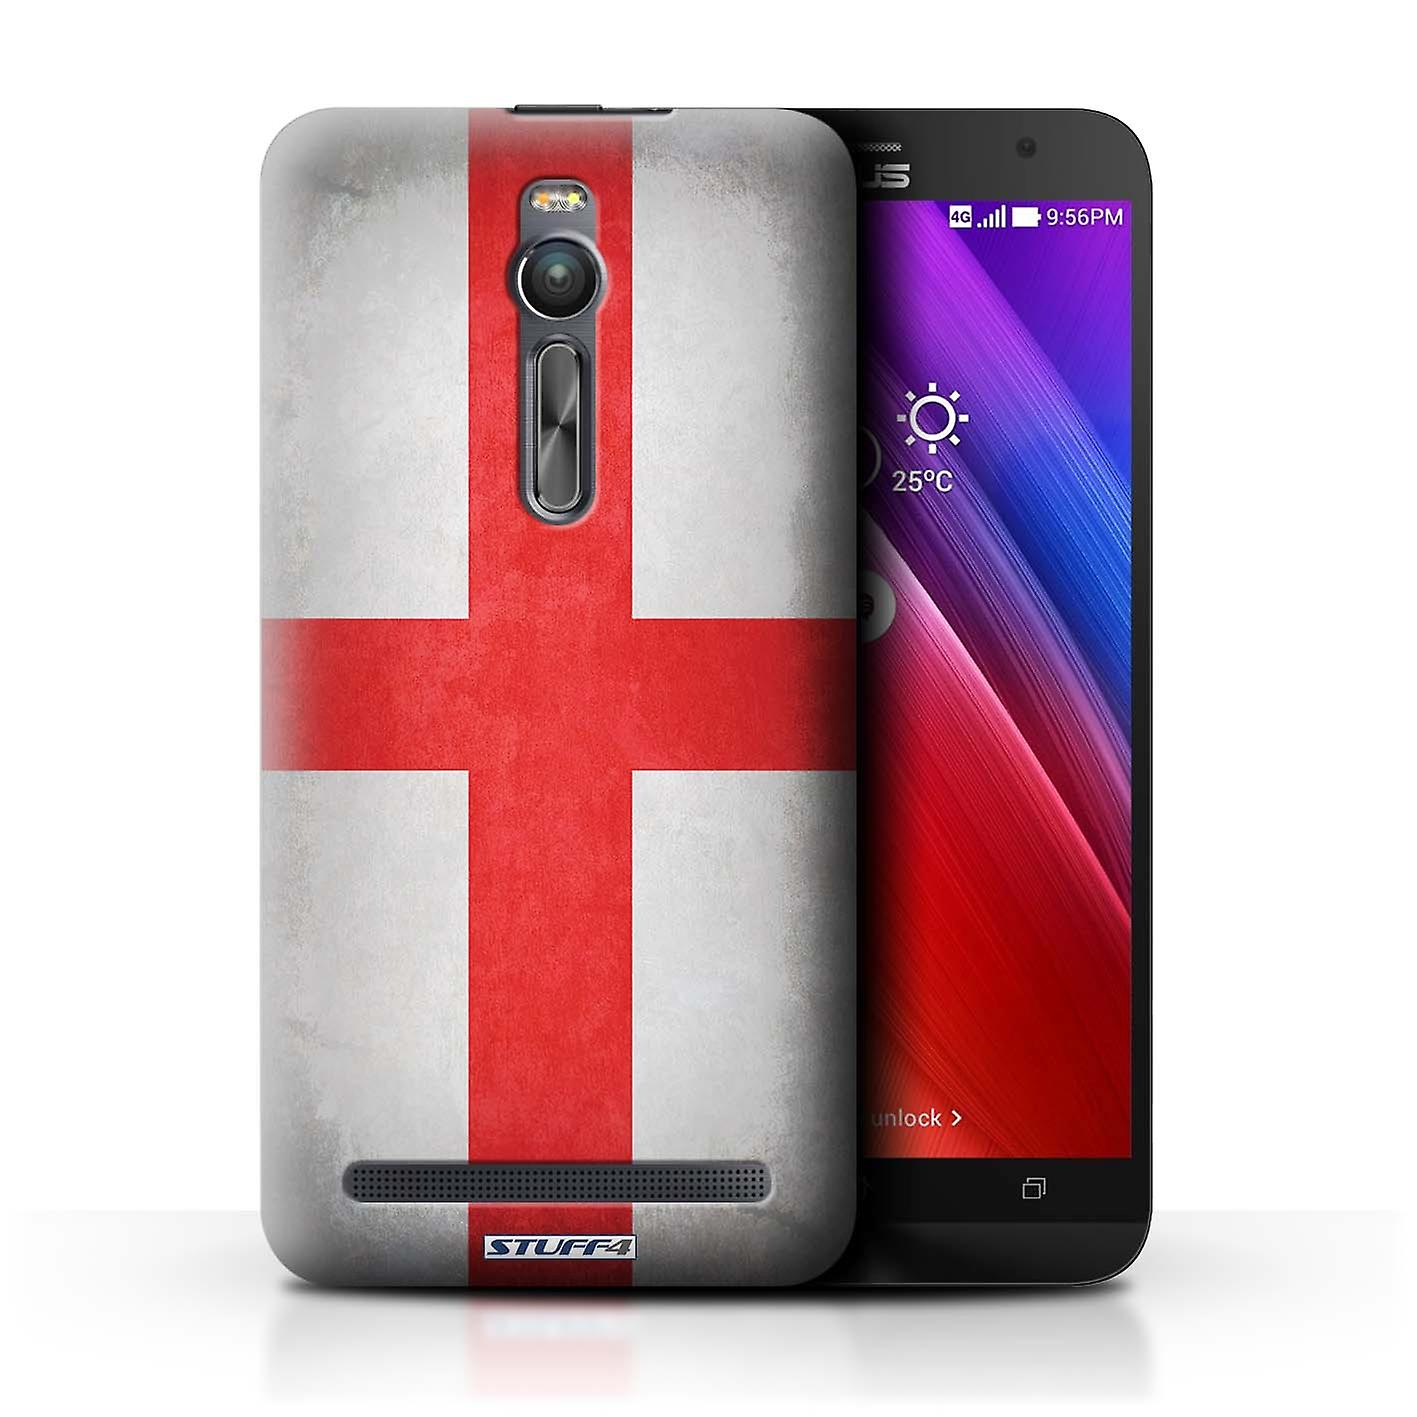 Stuff4 Case Cover For Asus Zenfone 2 Ze551ml England